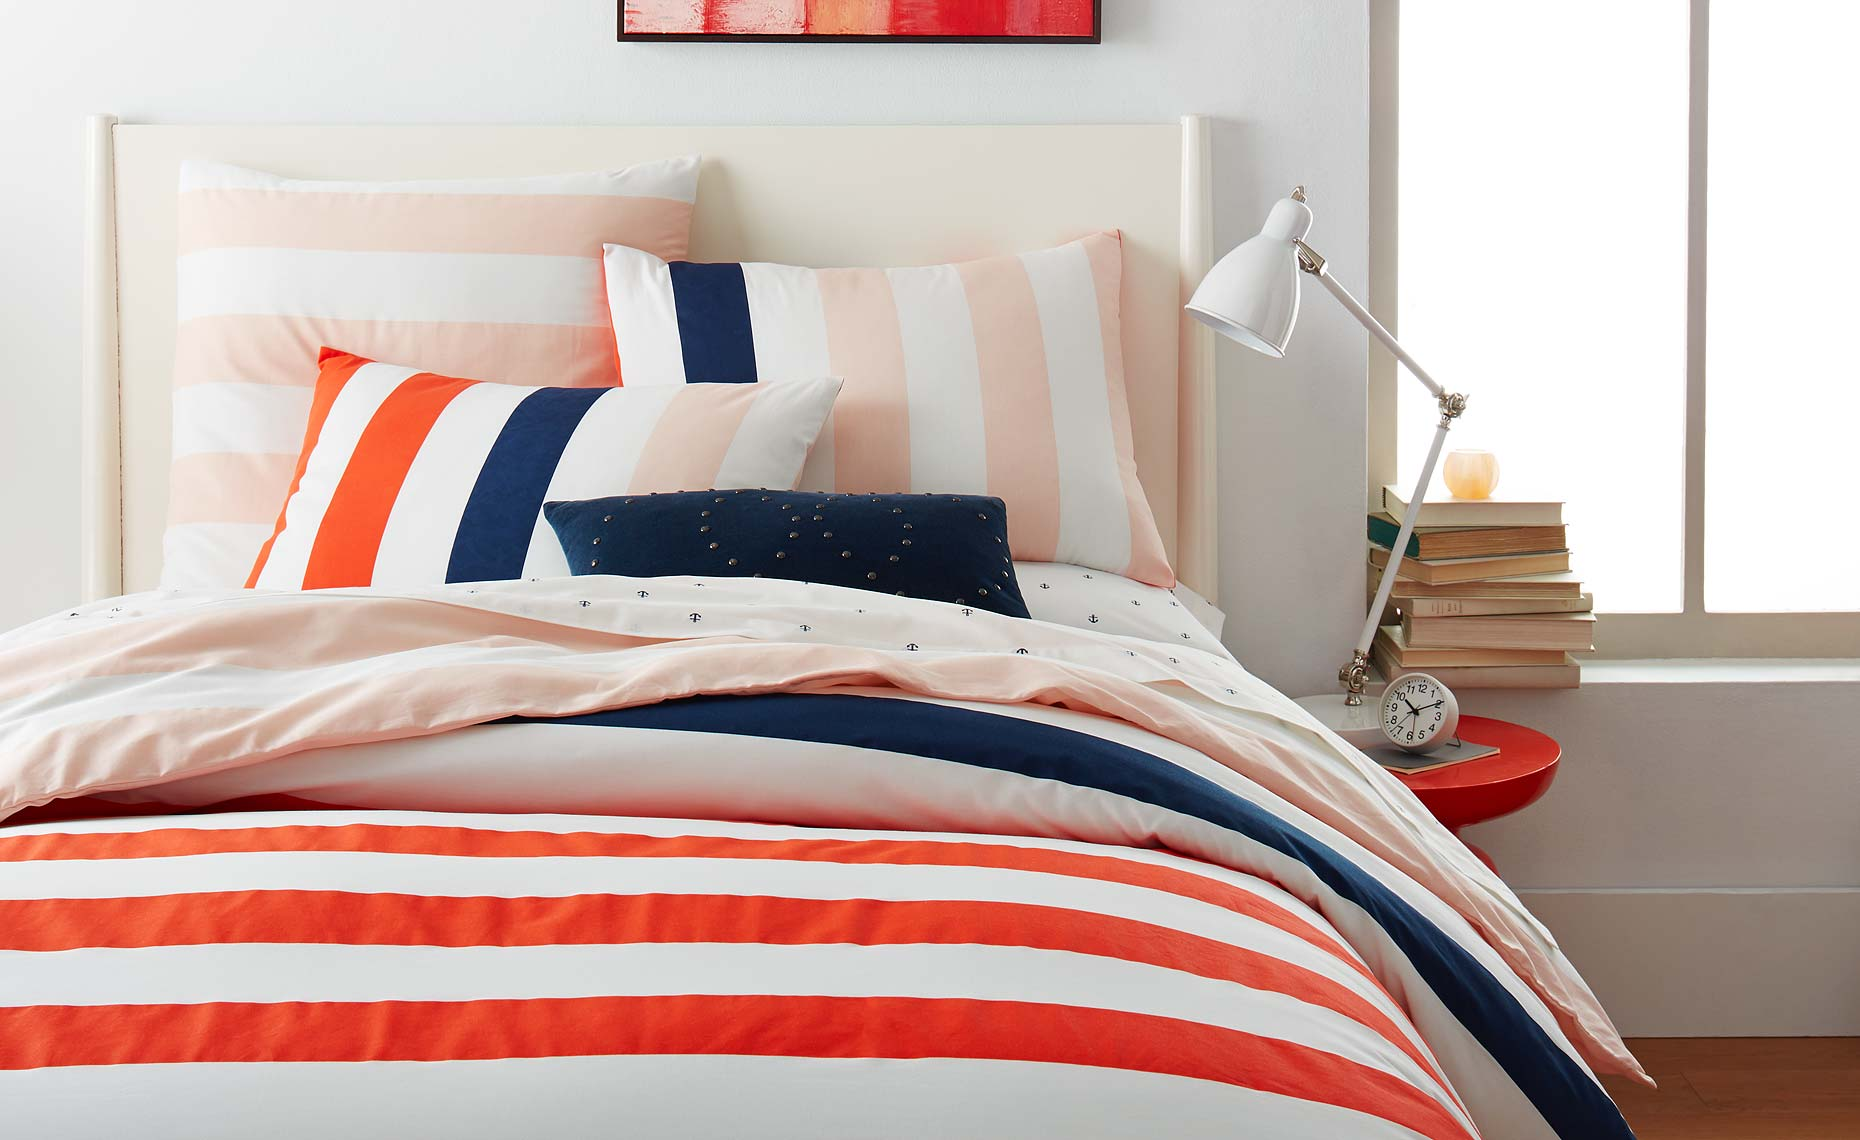 016_prep-stripe-duvet-bright-star-pip-sp15_557